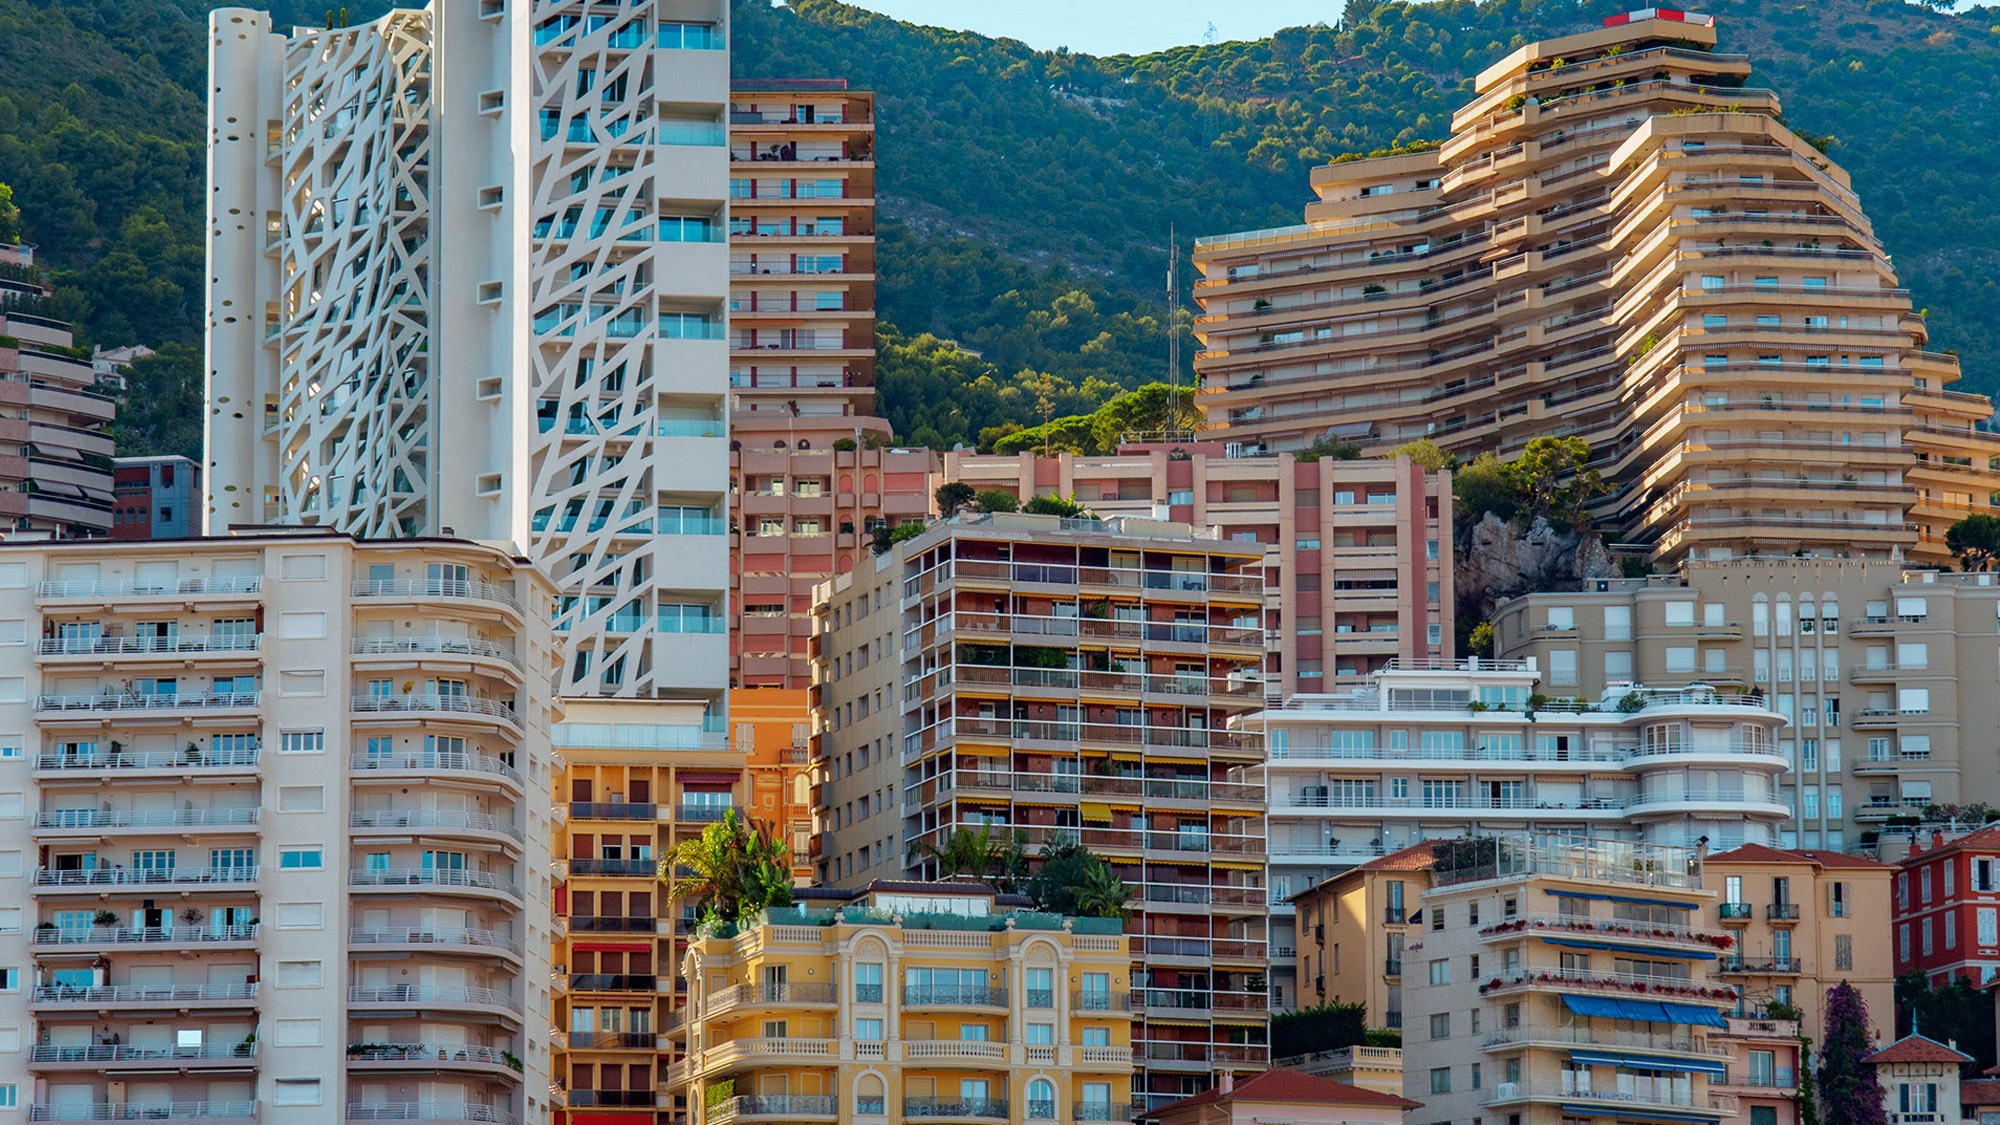 Terrasse Du Port Monaco Monaco Property For Sale Monaco Apartments For Sale Miells